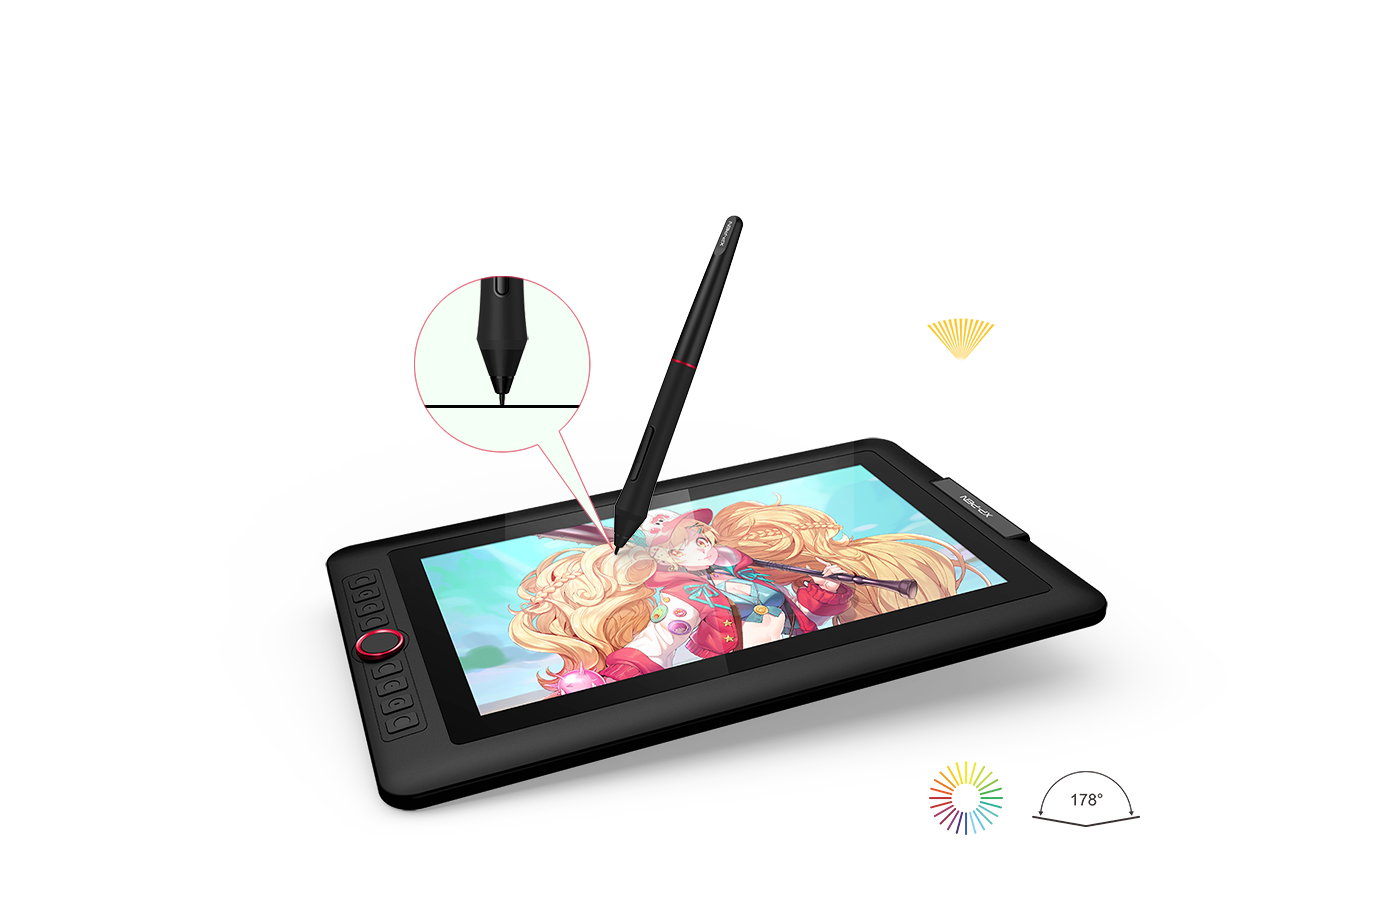 XP-Pen Artist 13.3 Pro art drawing tablet Features fully-laminated Display with 88% NTSC color gamut